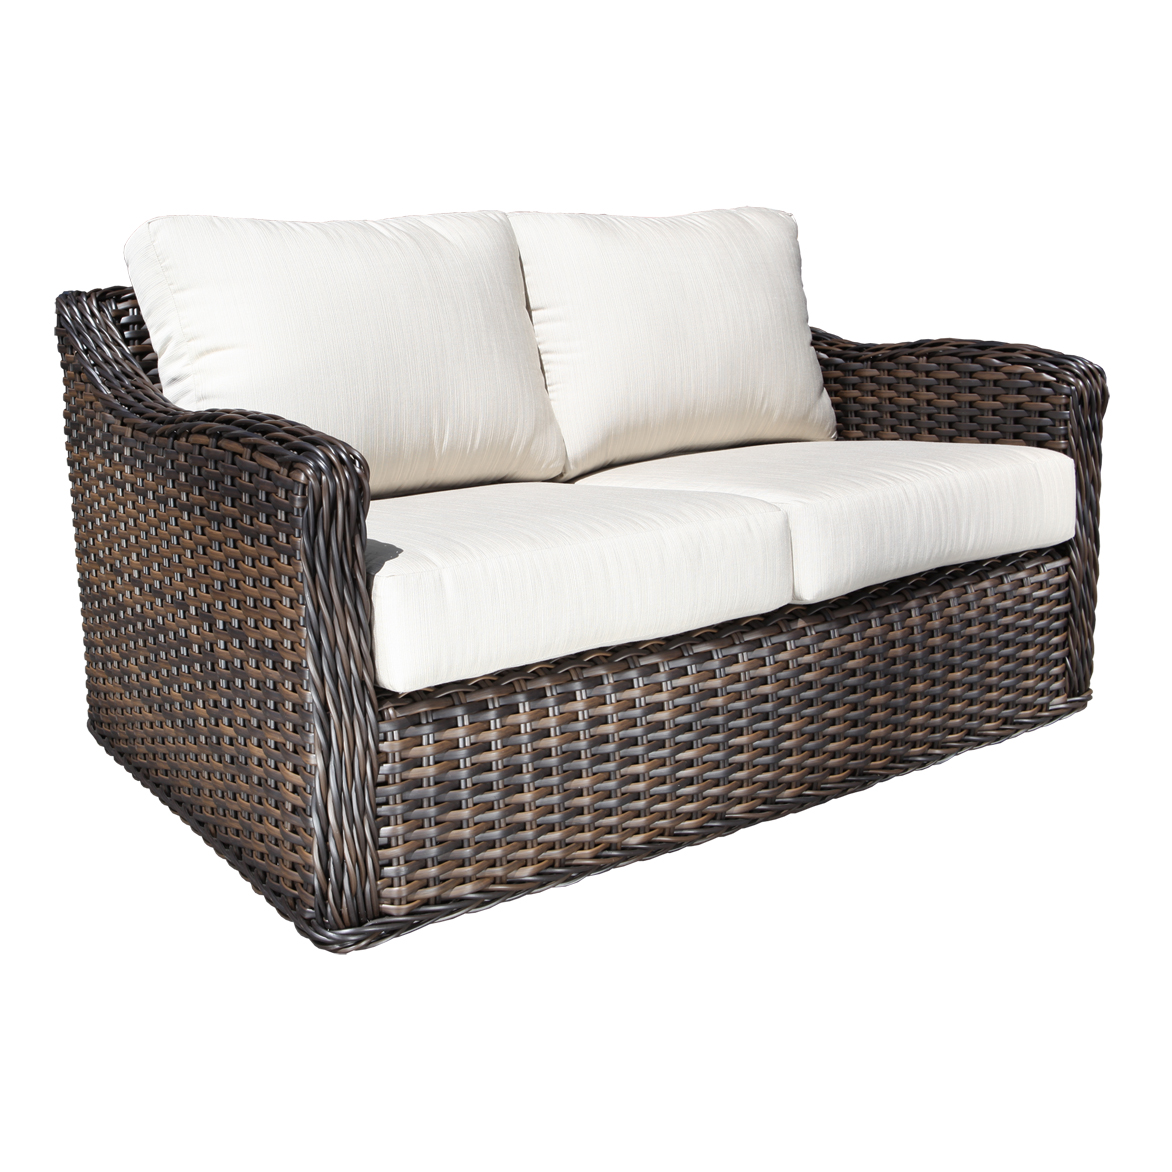 Cool resin wicker patio furniture for all weather hgnv com for Outdoor wicker furniture